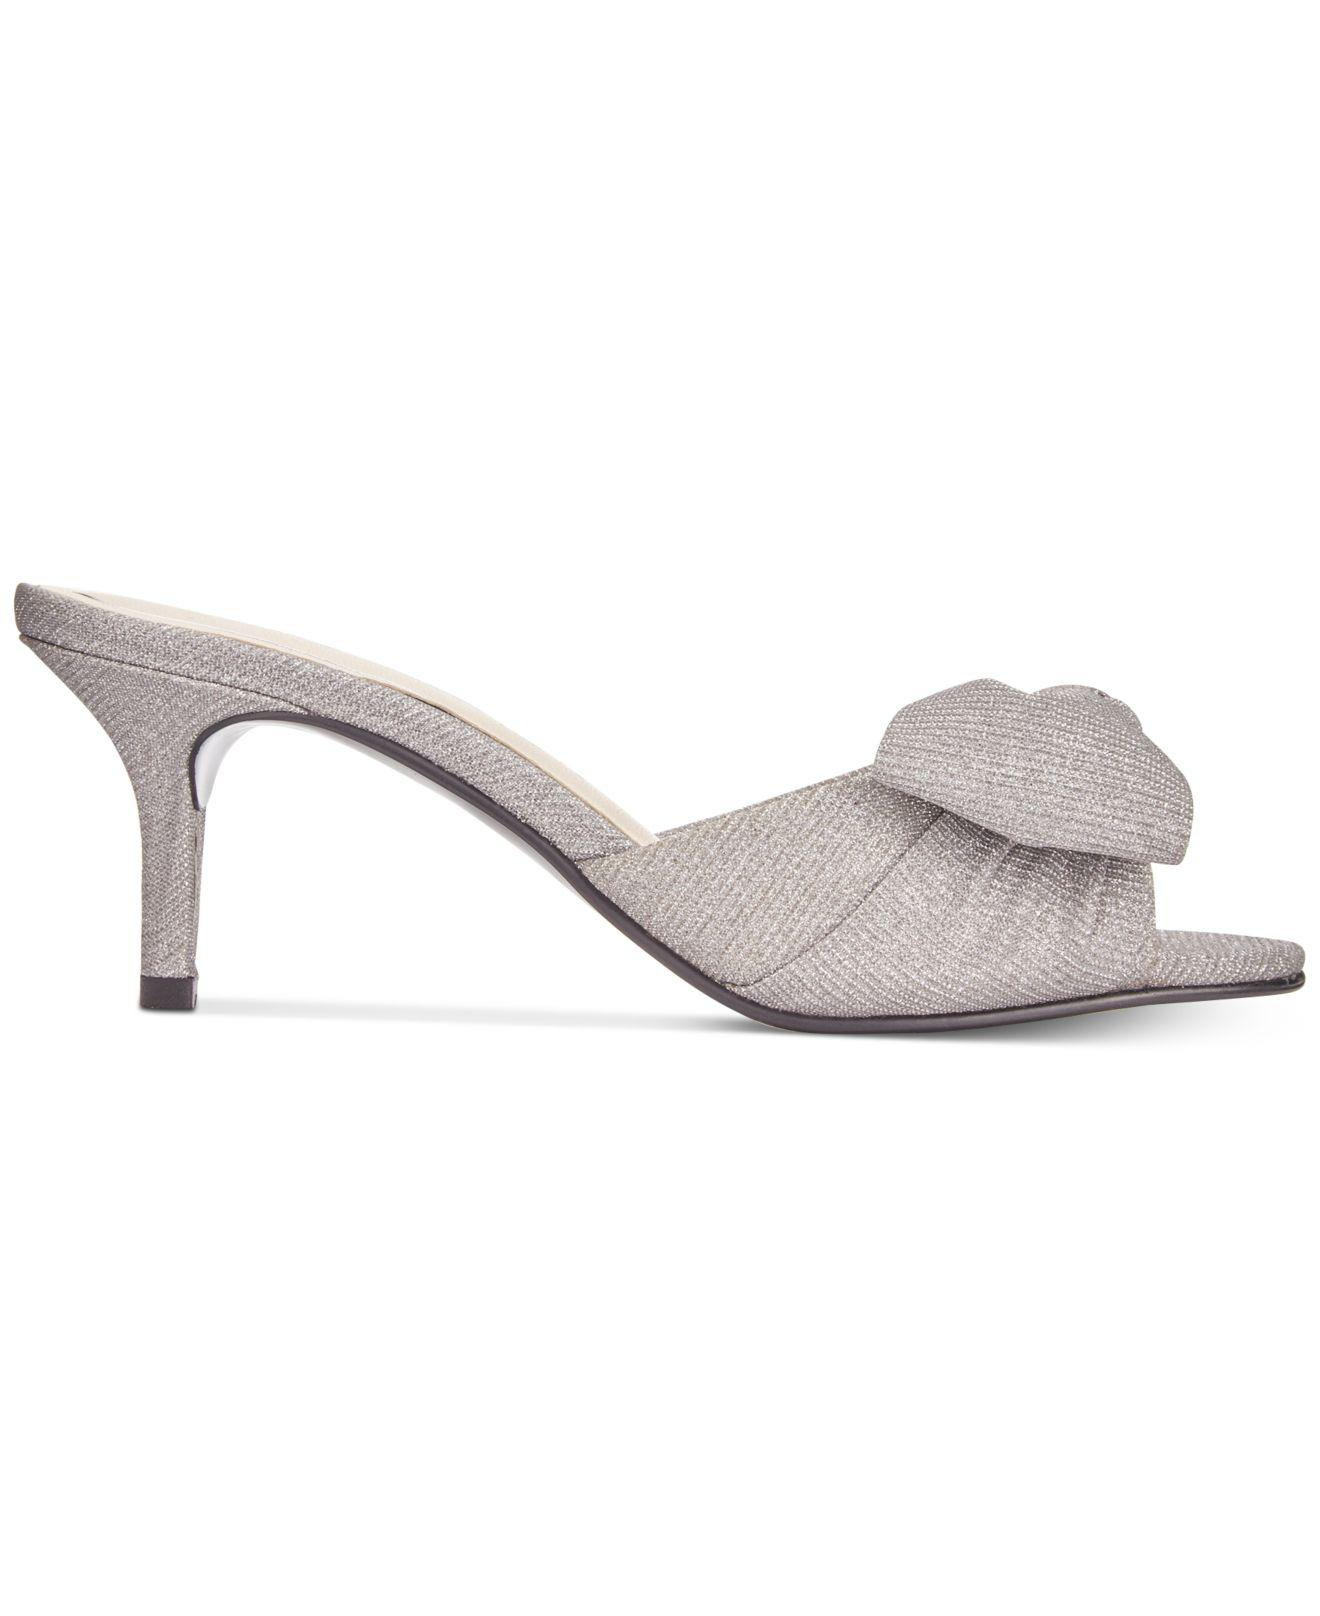 a8fefb46430 Lyst - Caparros Lydia Bow Slide Evening Sandals